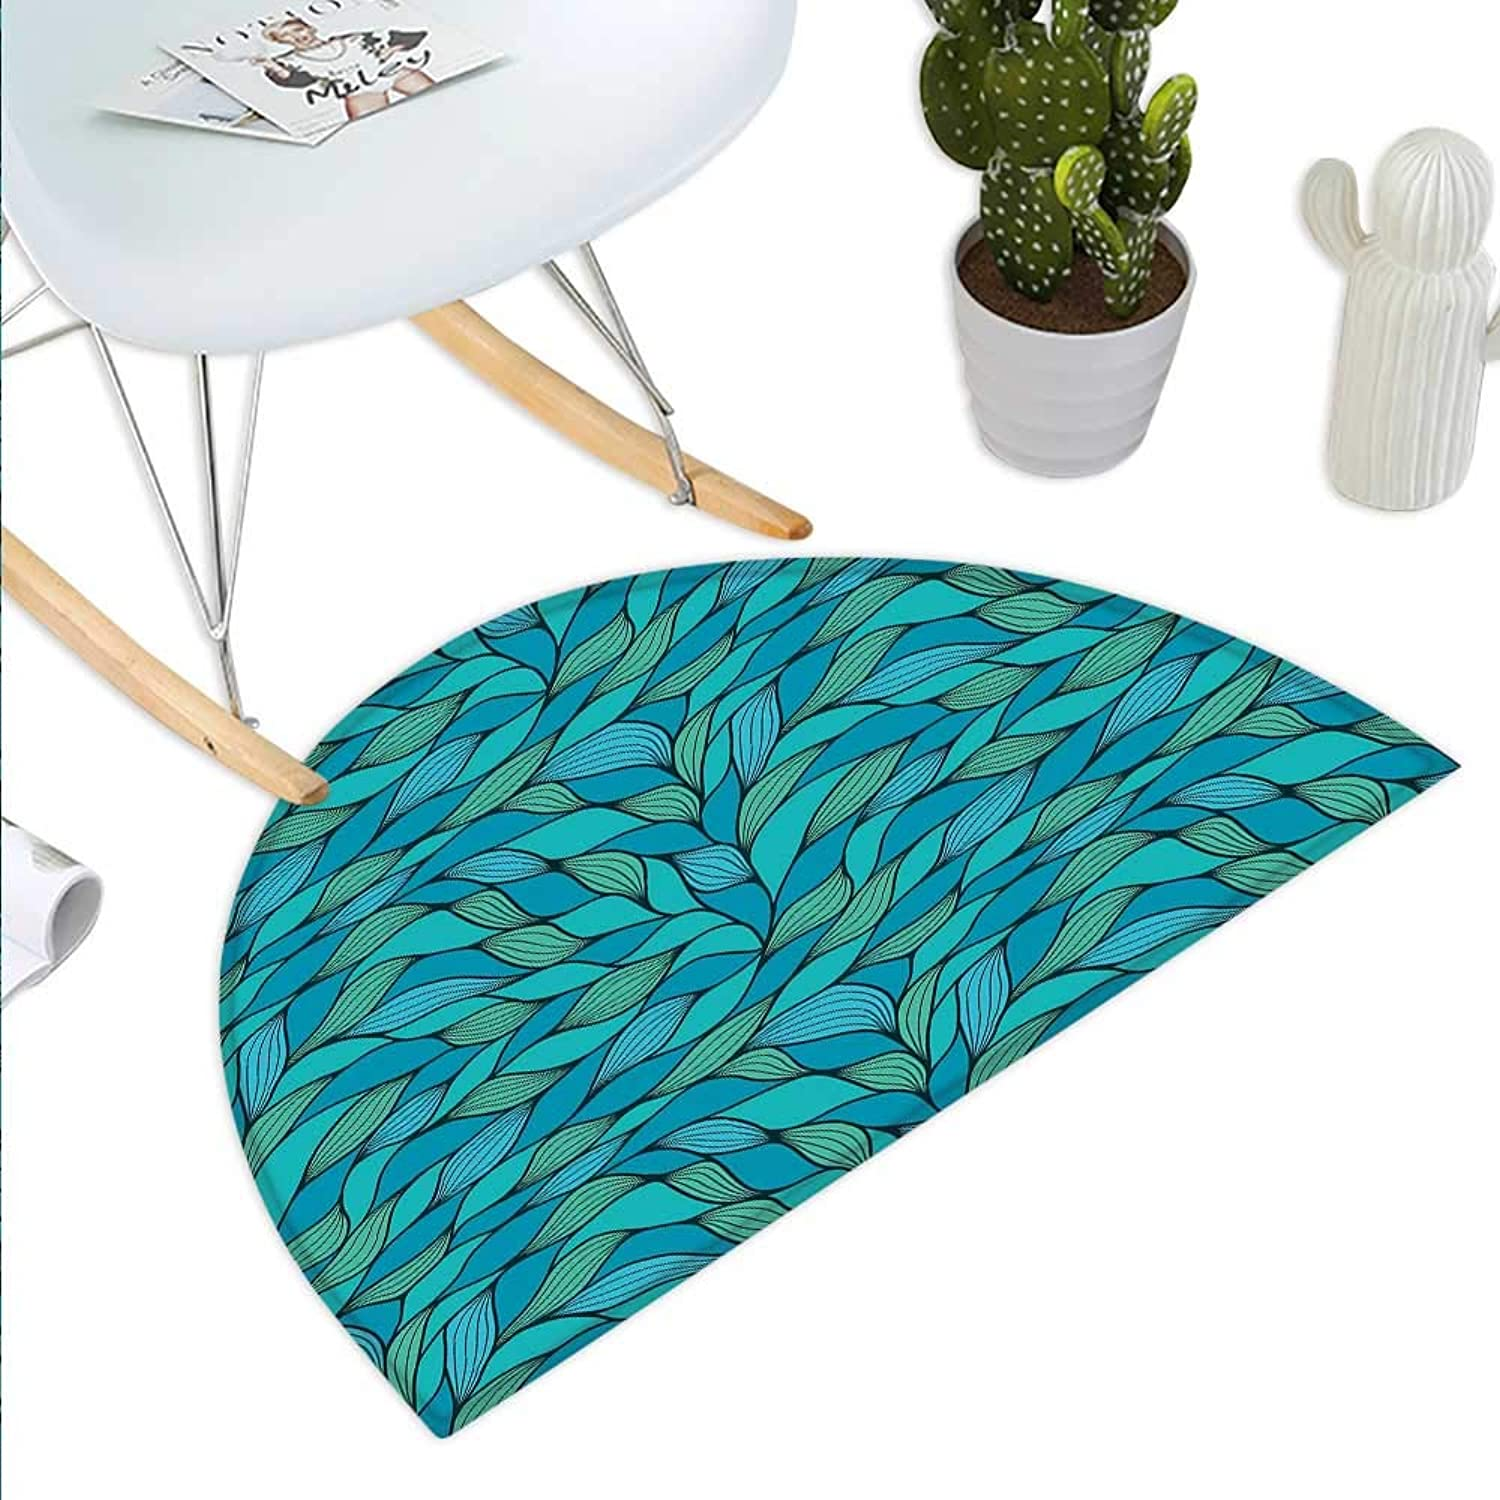 Teal Semicircle Doormat Abstract Wave Design Ocean Themed Marine Life Pattern Print Halfmoon doormats H 43.3  xD 64.9  bluee Mint Green